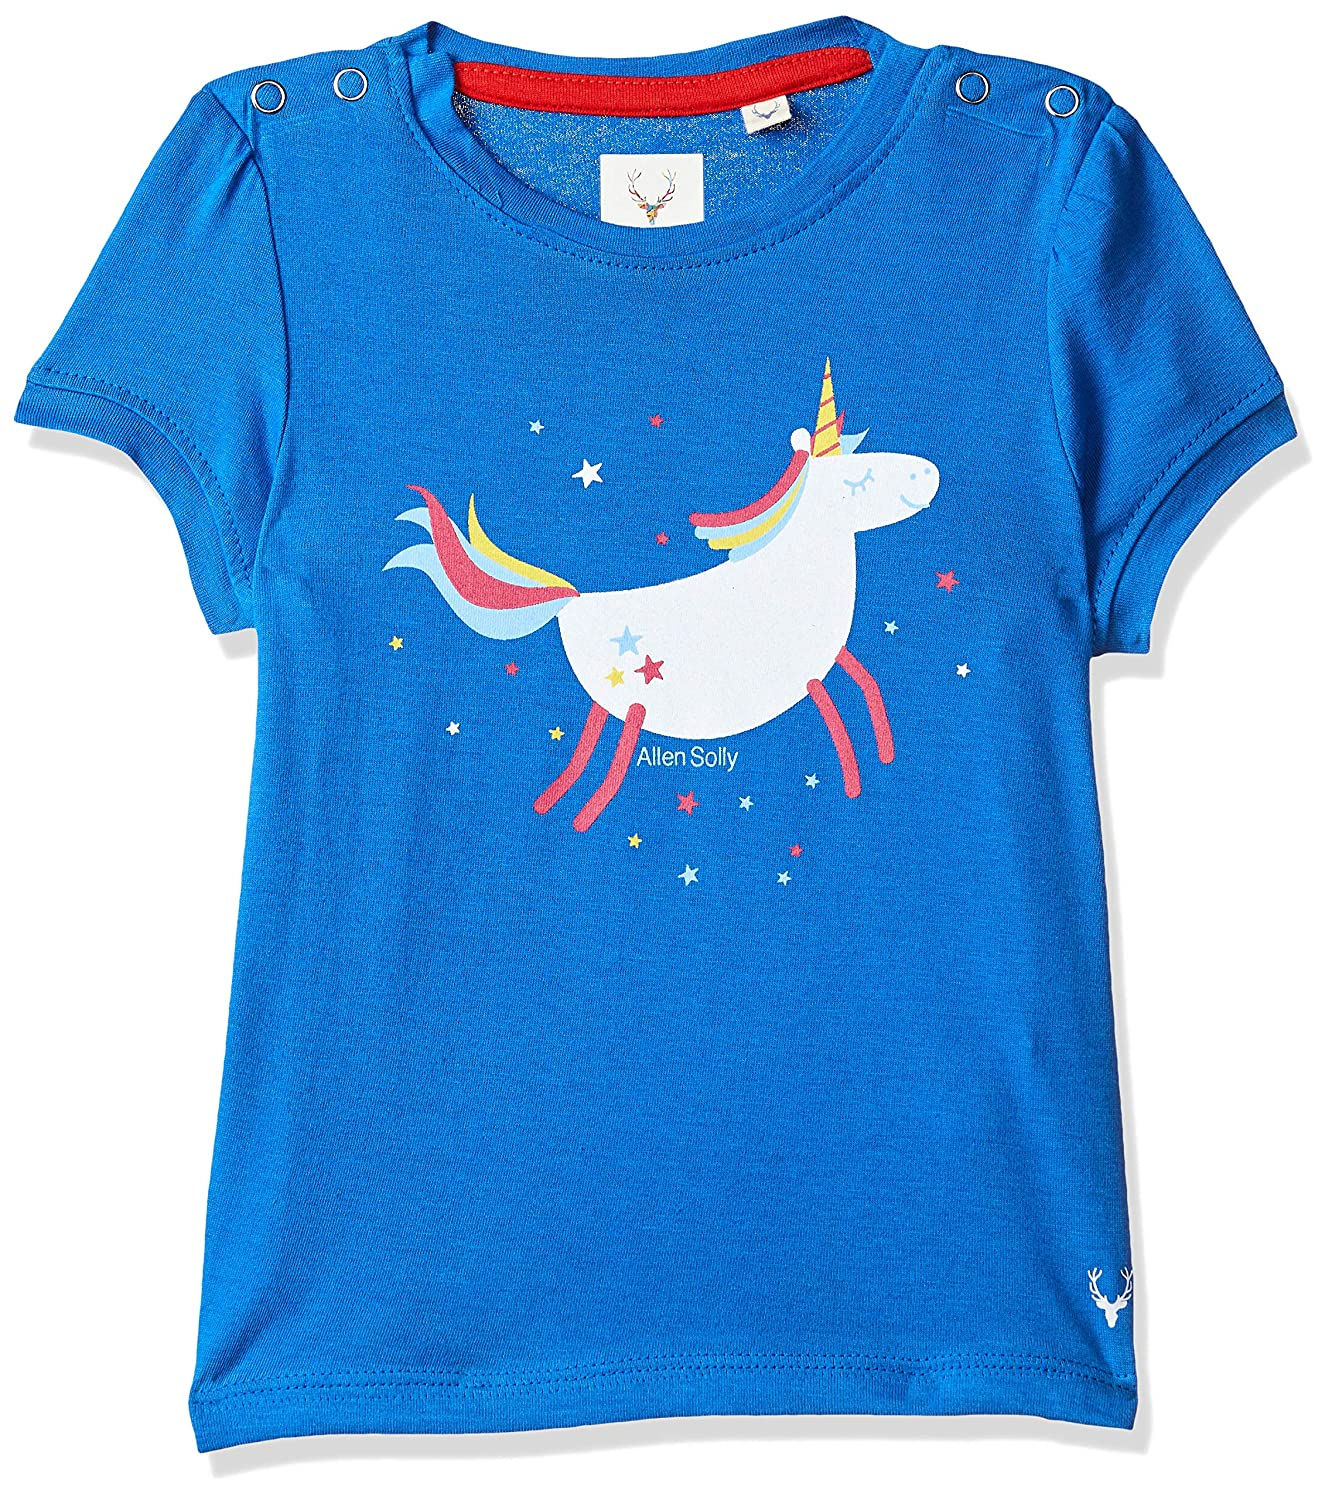 For 129/-(82% Off) Allen Solly kids clothing up to 82% off at Amazon India